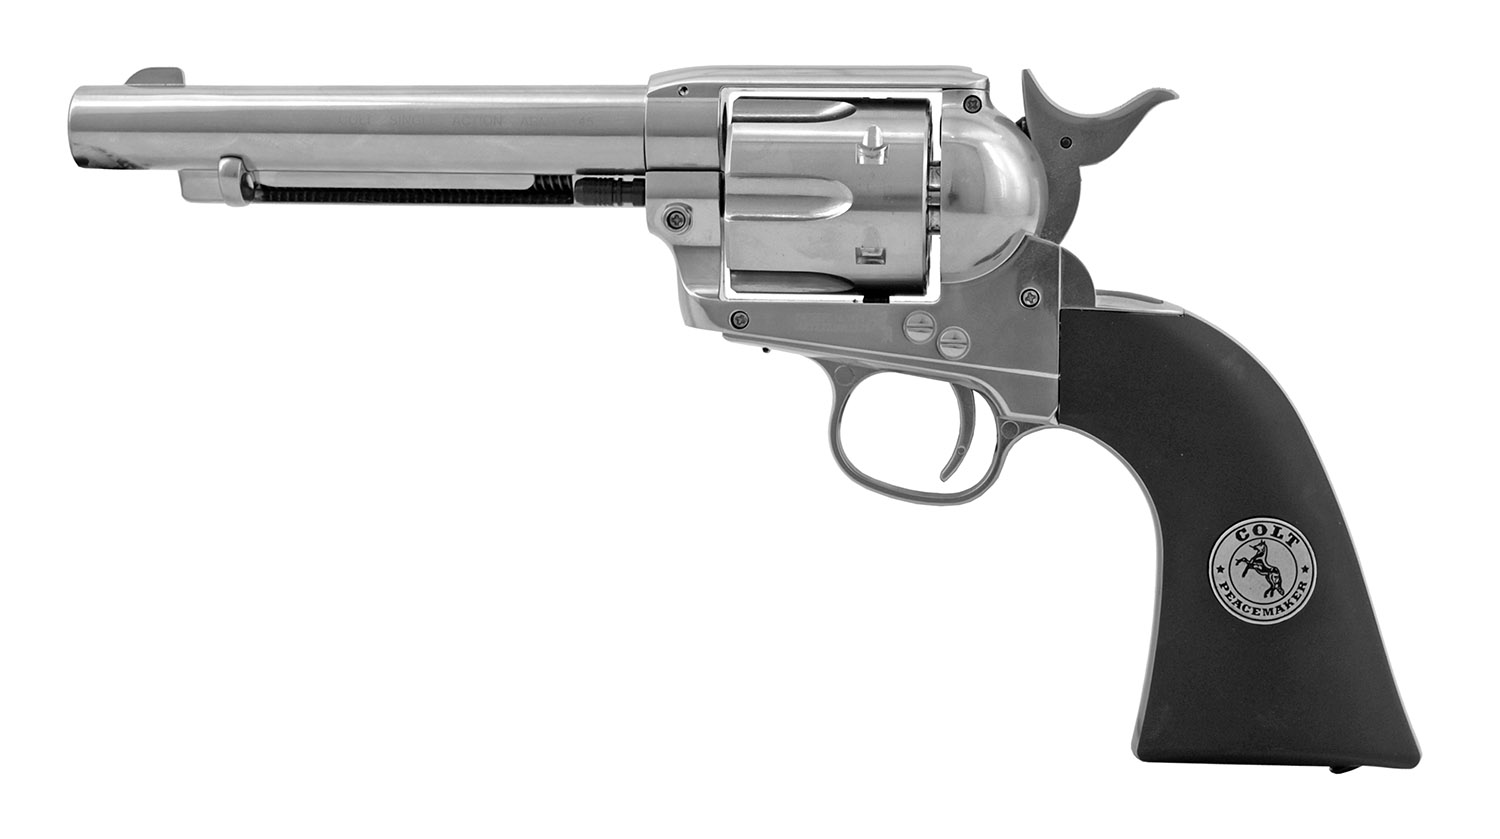 Umarex Colt Single Action Army .45 Replica .177 Cal. CO2 Revolver Pellet Pistol - Refurbished